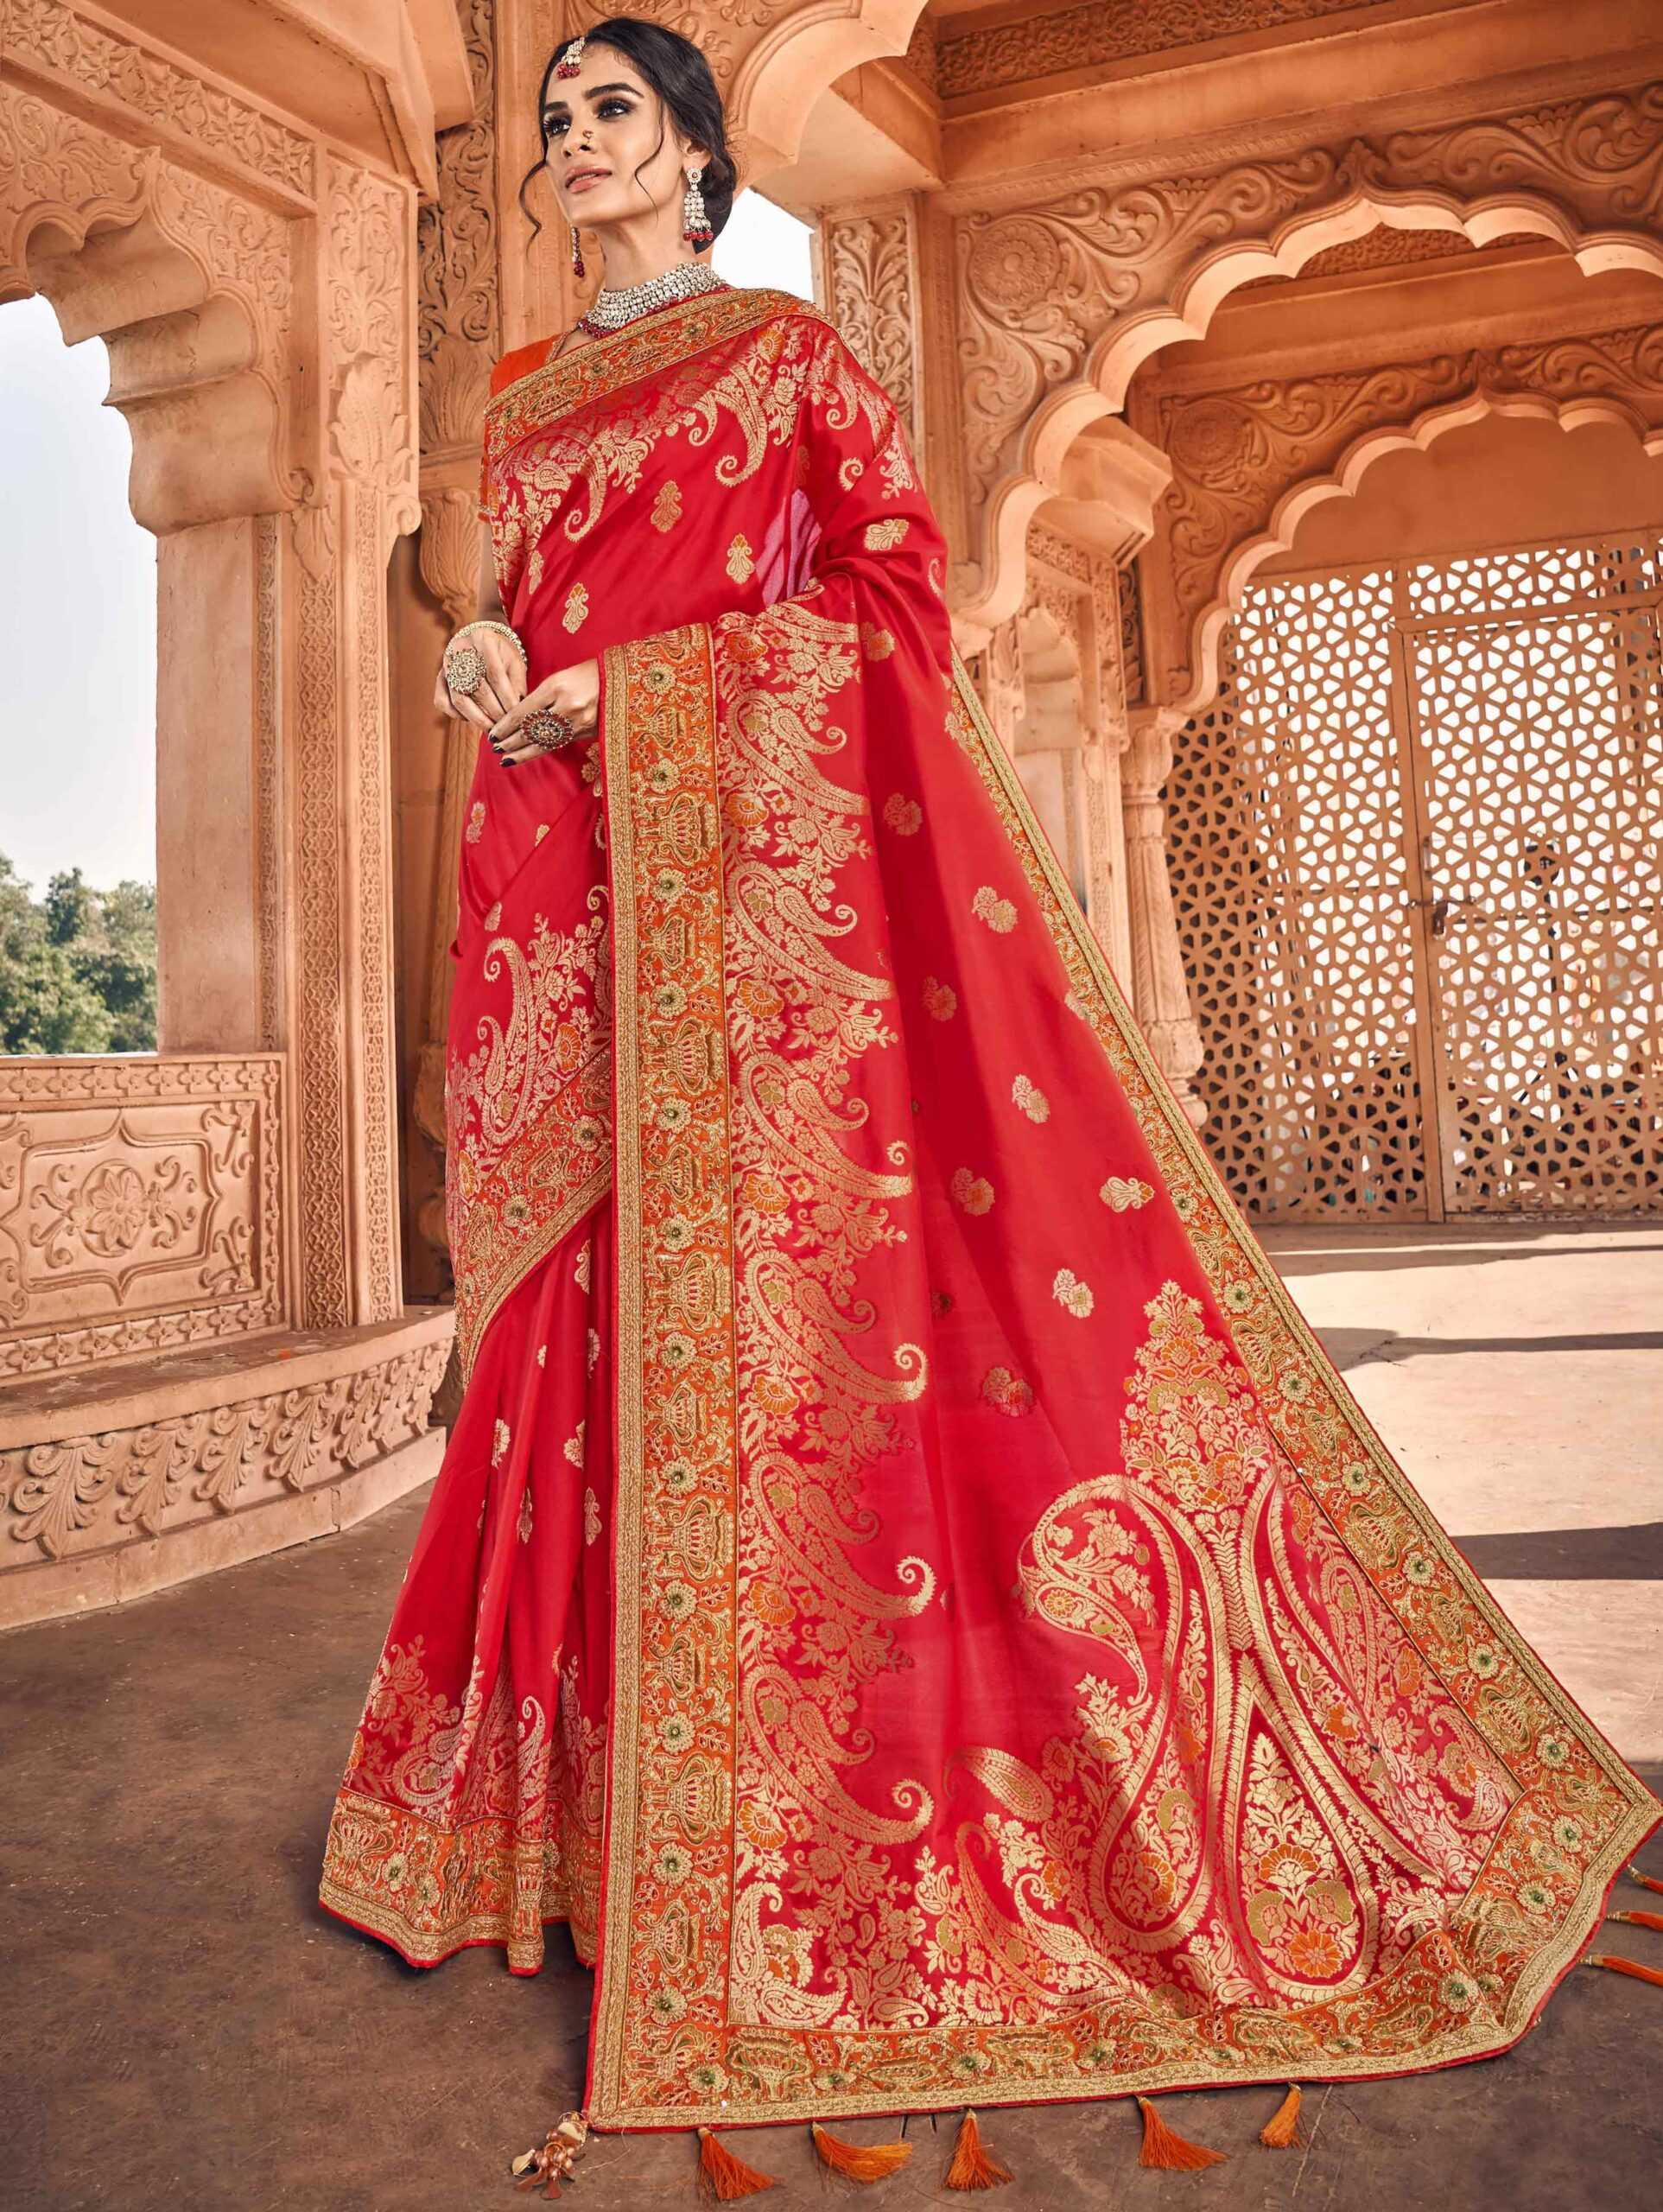 Red Banarasi Silk Traditional Woven Saree with Paisley Motif Border and Double Blouse